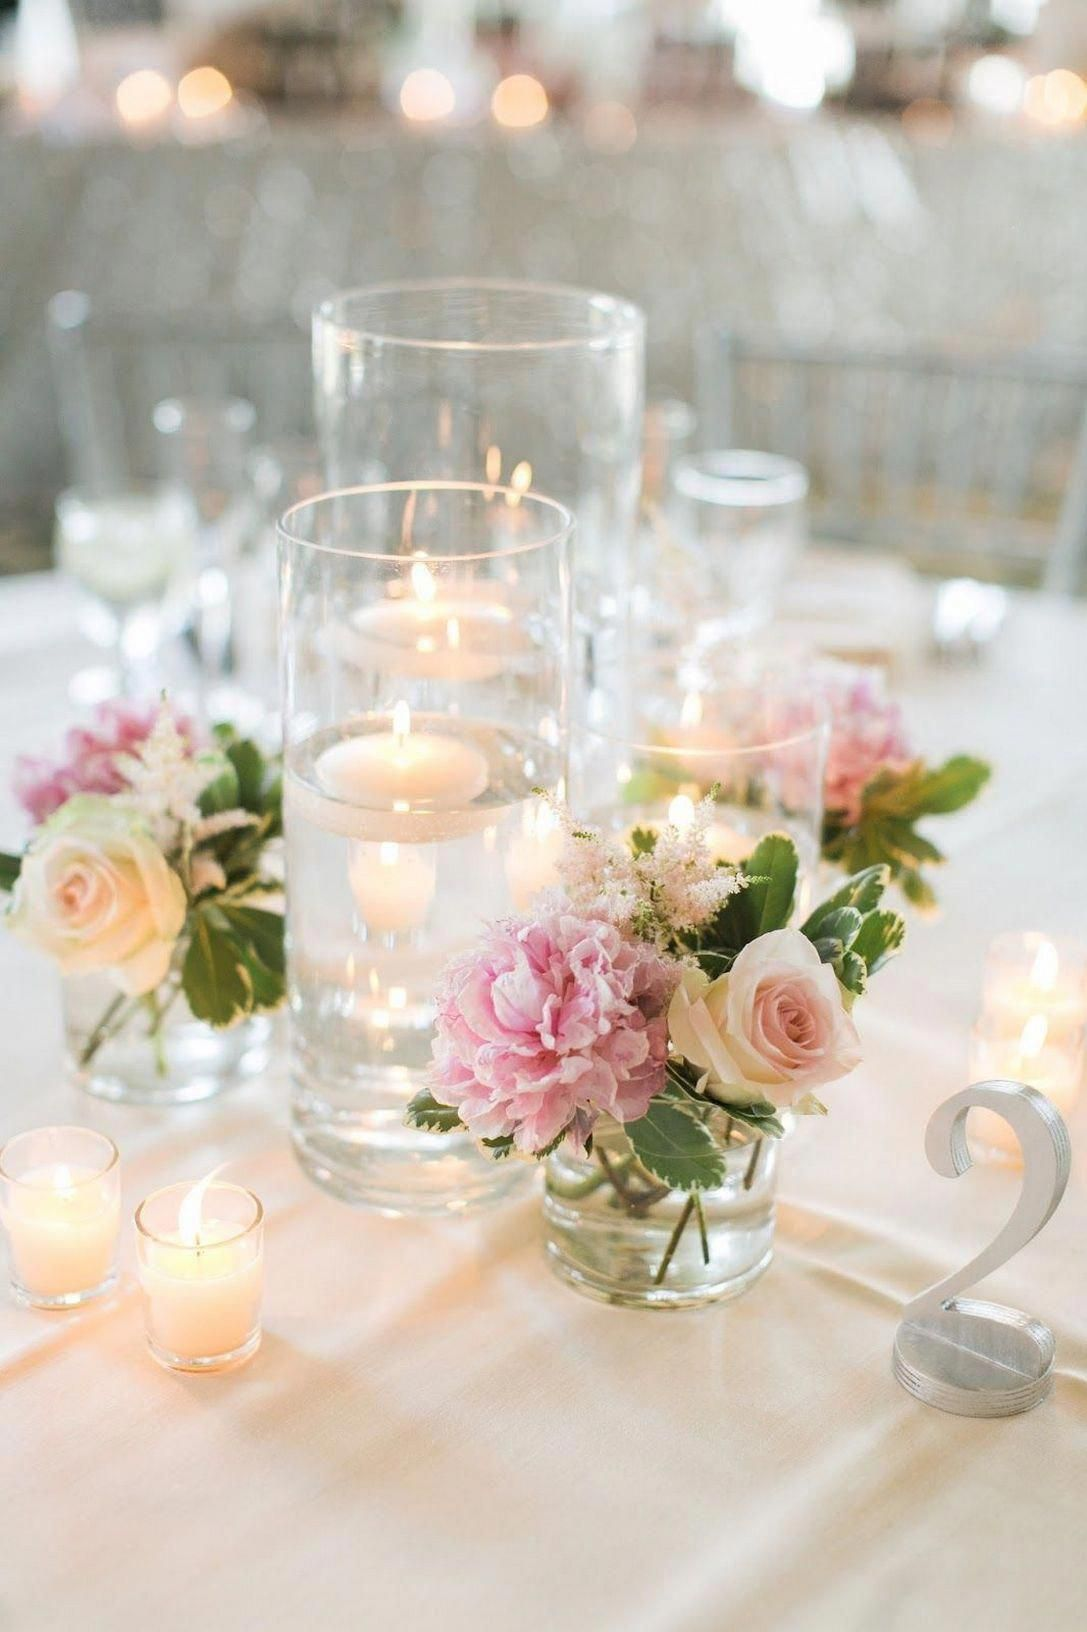 Dining Table Centerpiece Ideas Formal And Unique Table Centerpiece Floating Candle Centerpieces Wedding Table Centerpieces Candle Centerpieces